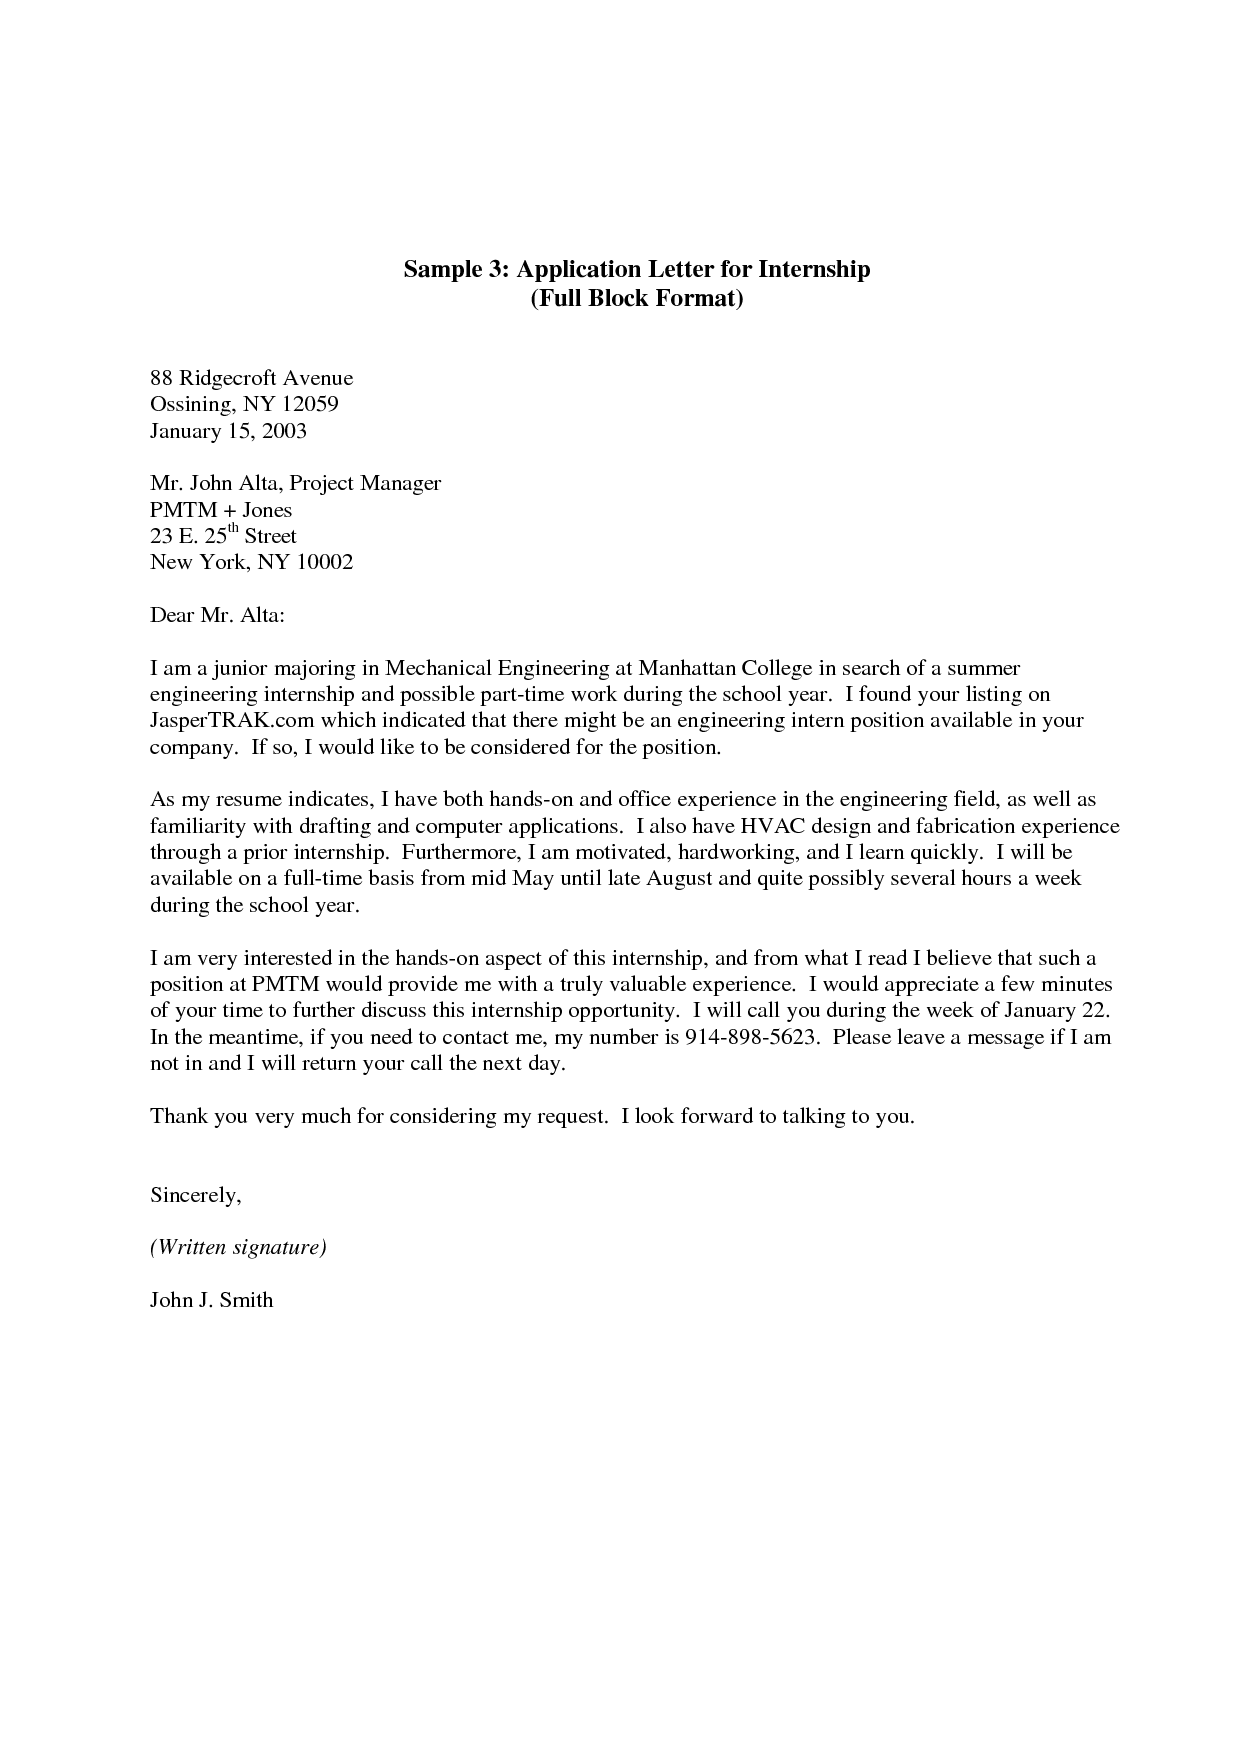 Internship Application Letter   Here Is A Sample Cover Letter For Applying  For A Job Or Internship.